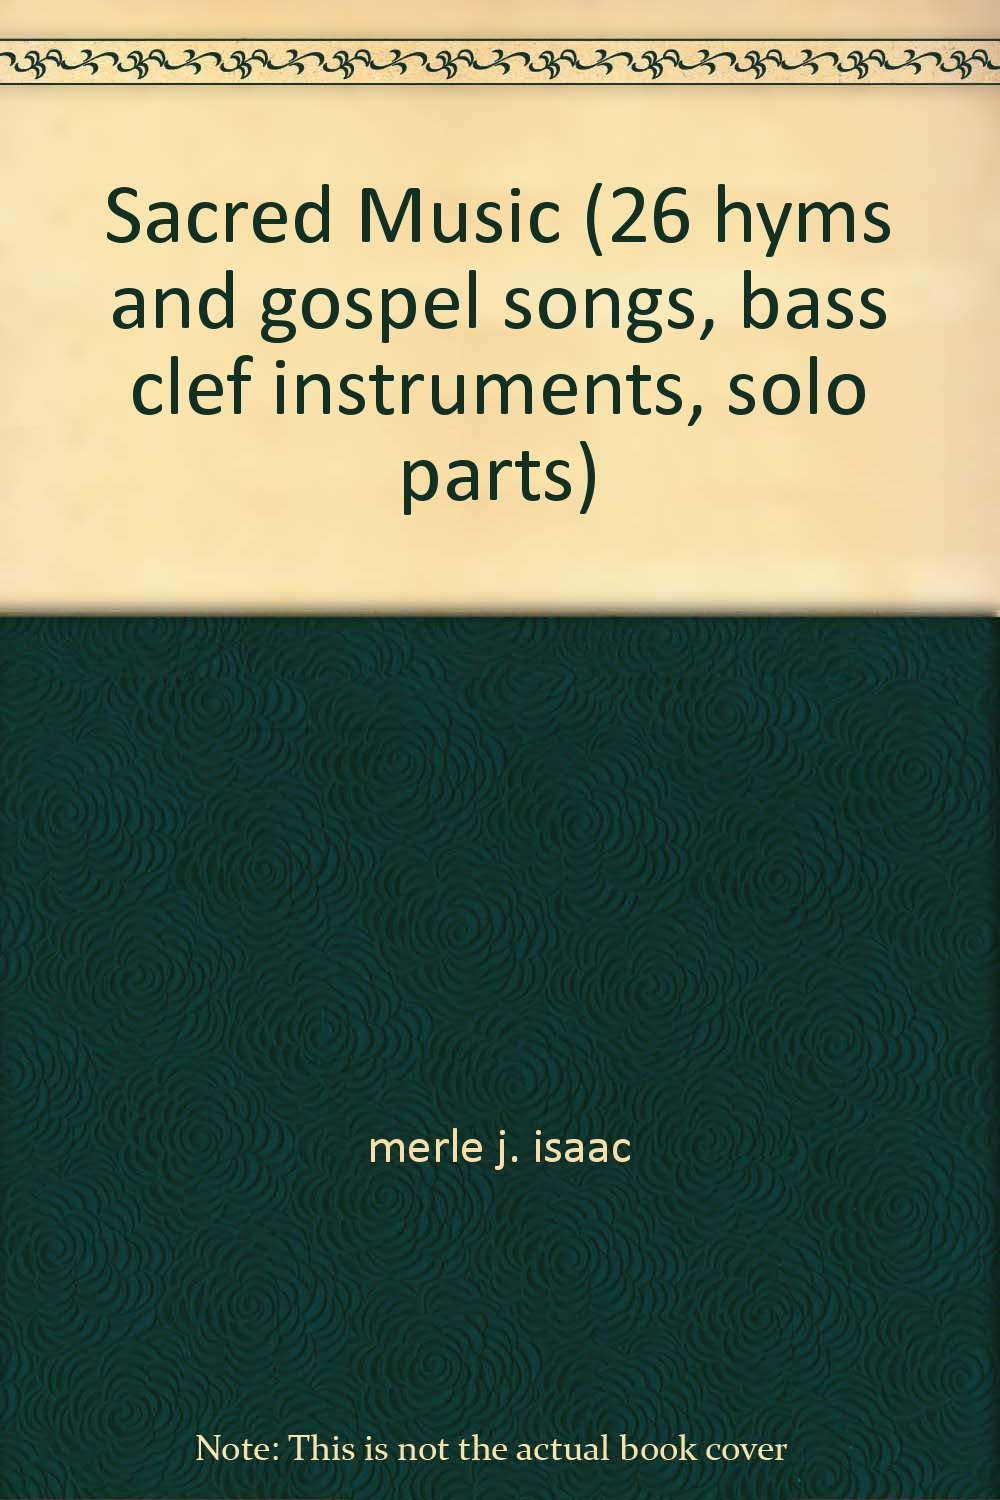 Sacred Music (26 hyms and gospel songs, bass clef instruments, solo